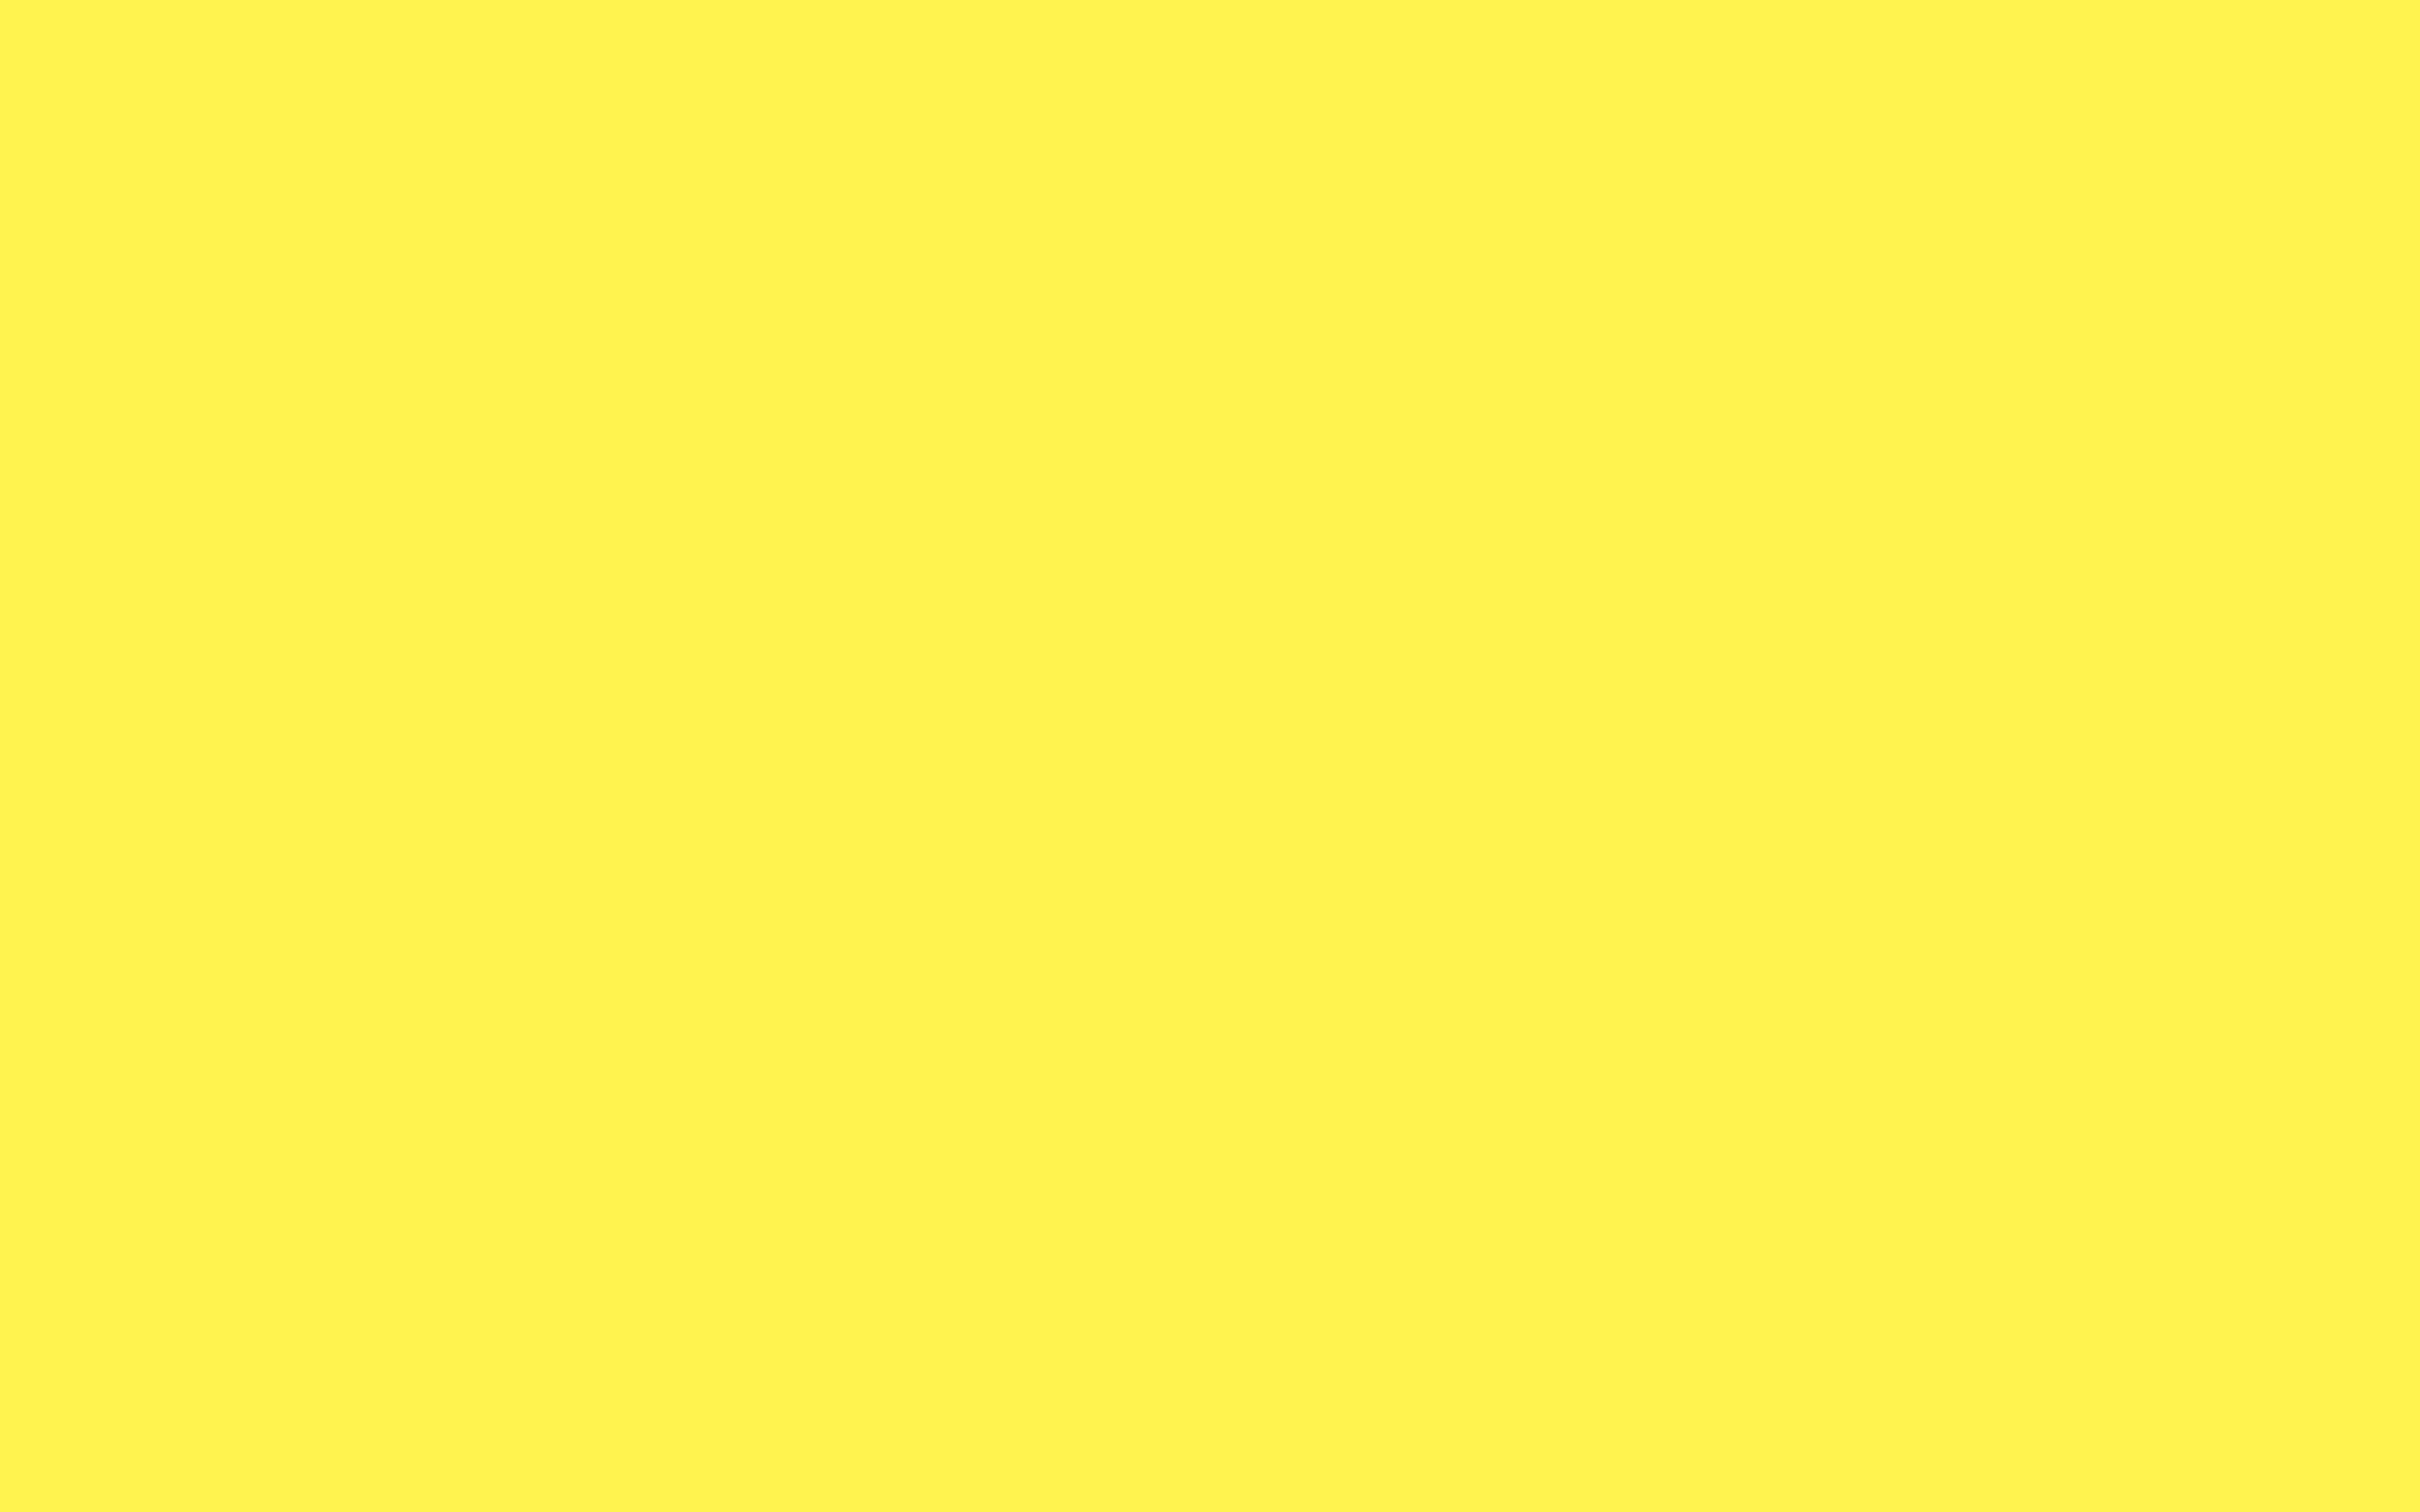 Foundation 5 background image - 2880x1800 Lemon Yellow Solid Color Background